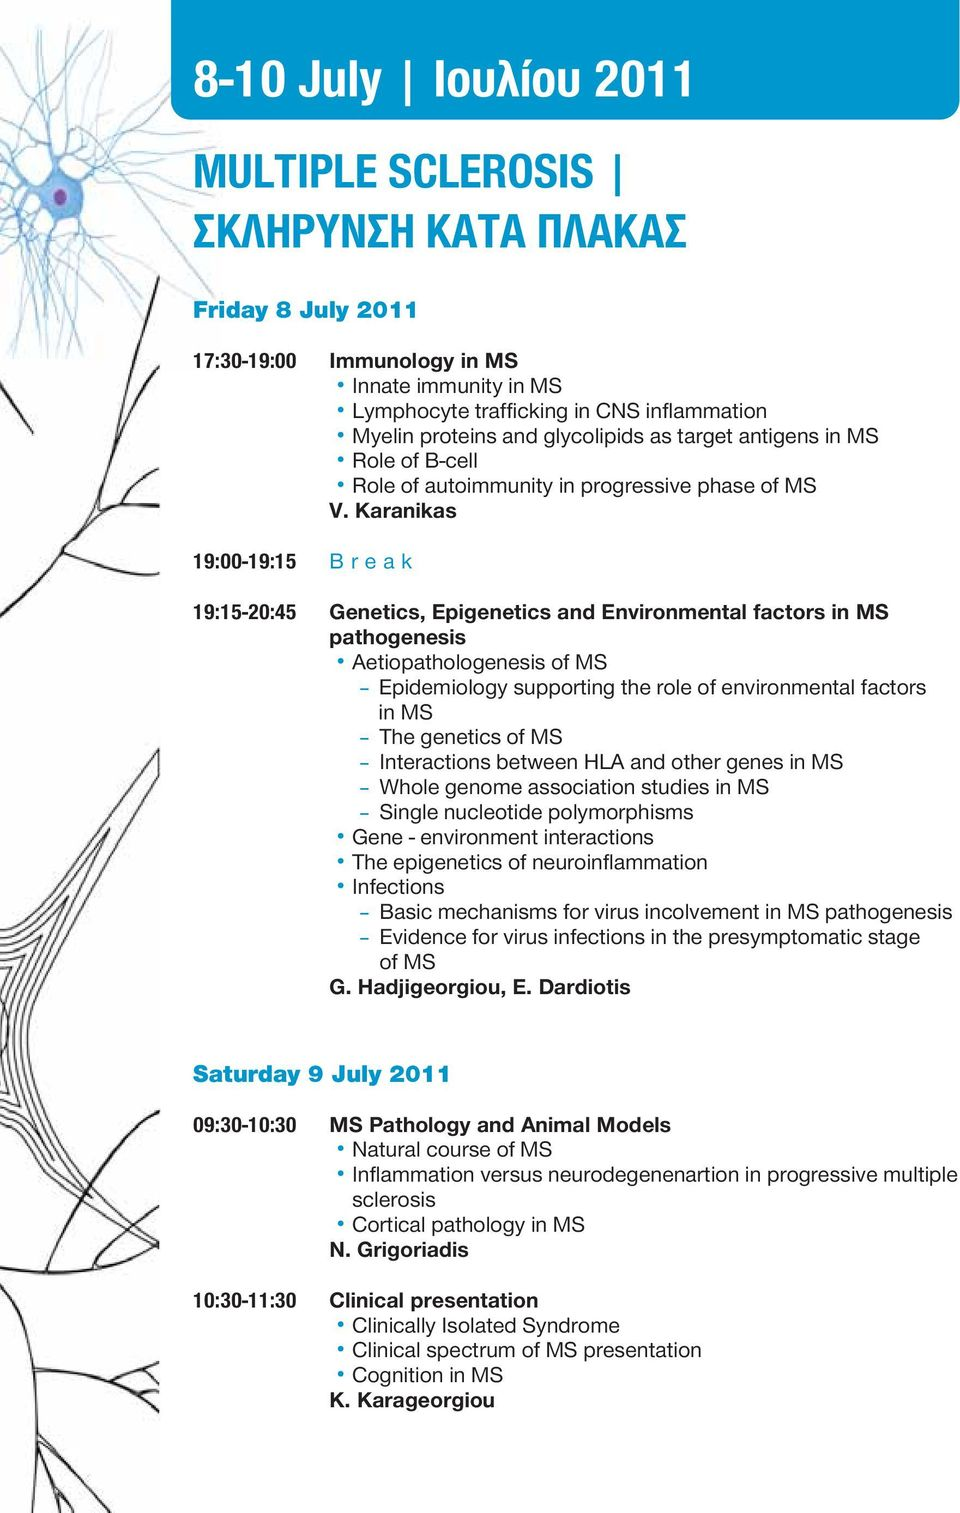 Karanikas 19:00-19:15 Break 19:15-20:45 Genetics, Epigenetics and Environmental factors in MS pathogenesis Aetiopathologenesis of MS - Epidemiology supporting the role of environmental factors in MS